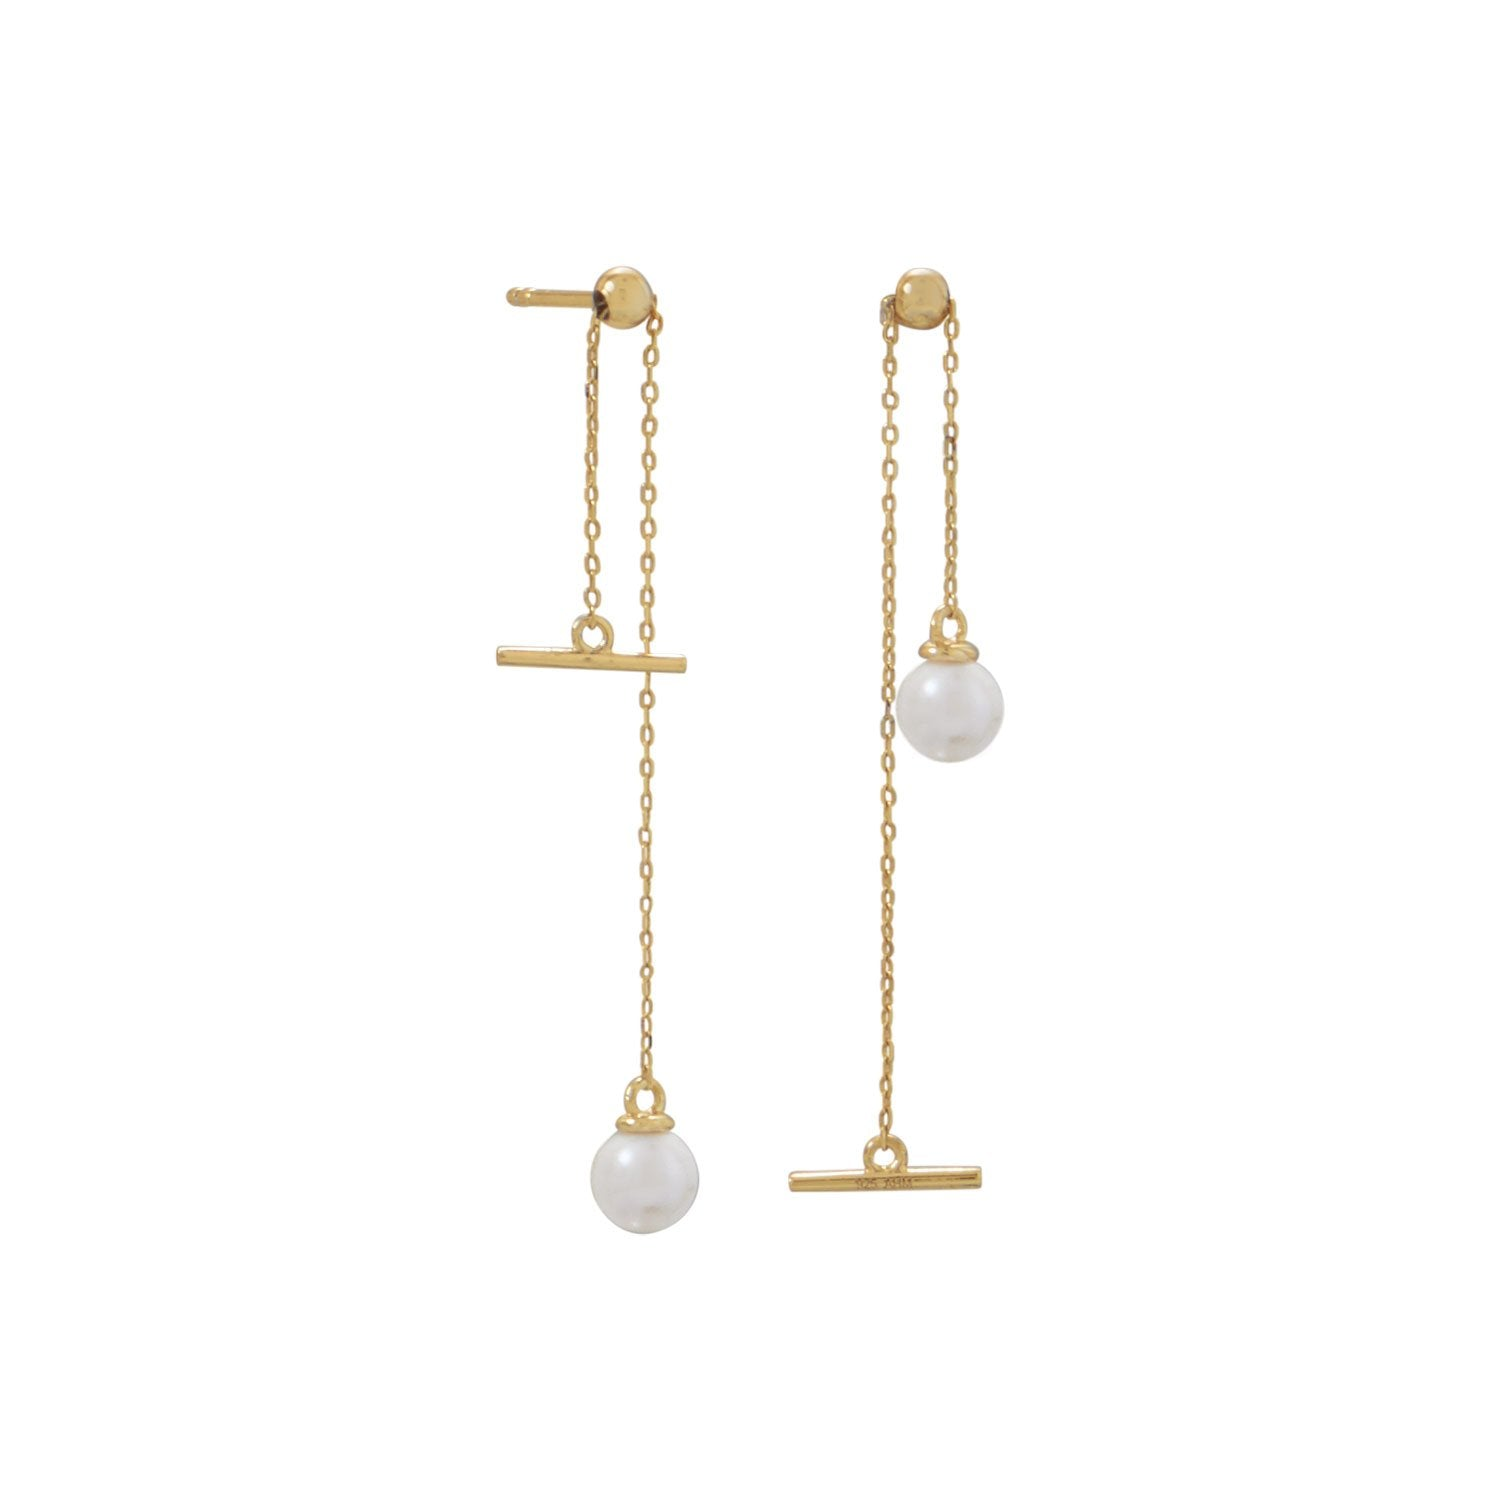 18 Karat Gold Plated Imitation Pearl Slide Earrings - Rocky Mt. Discount Outlet